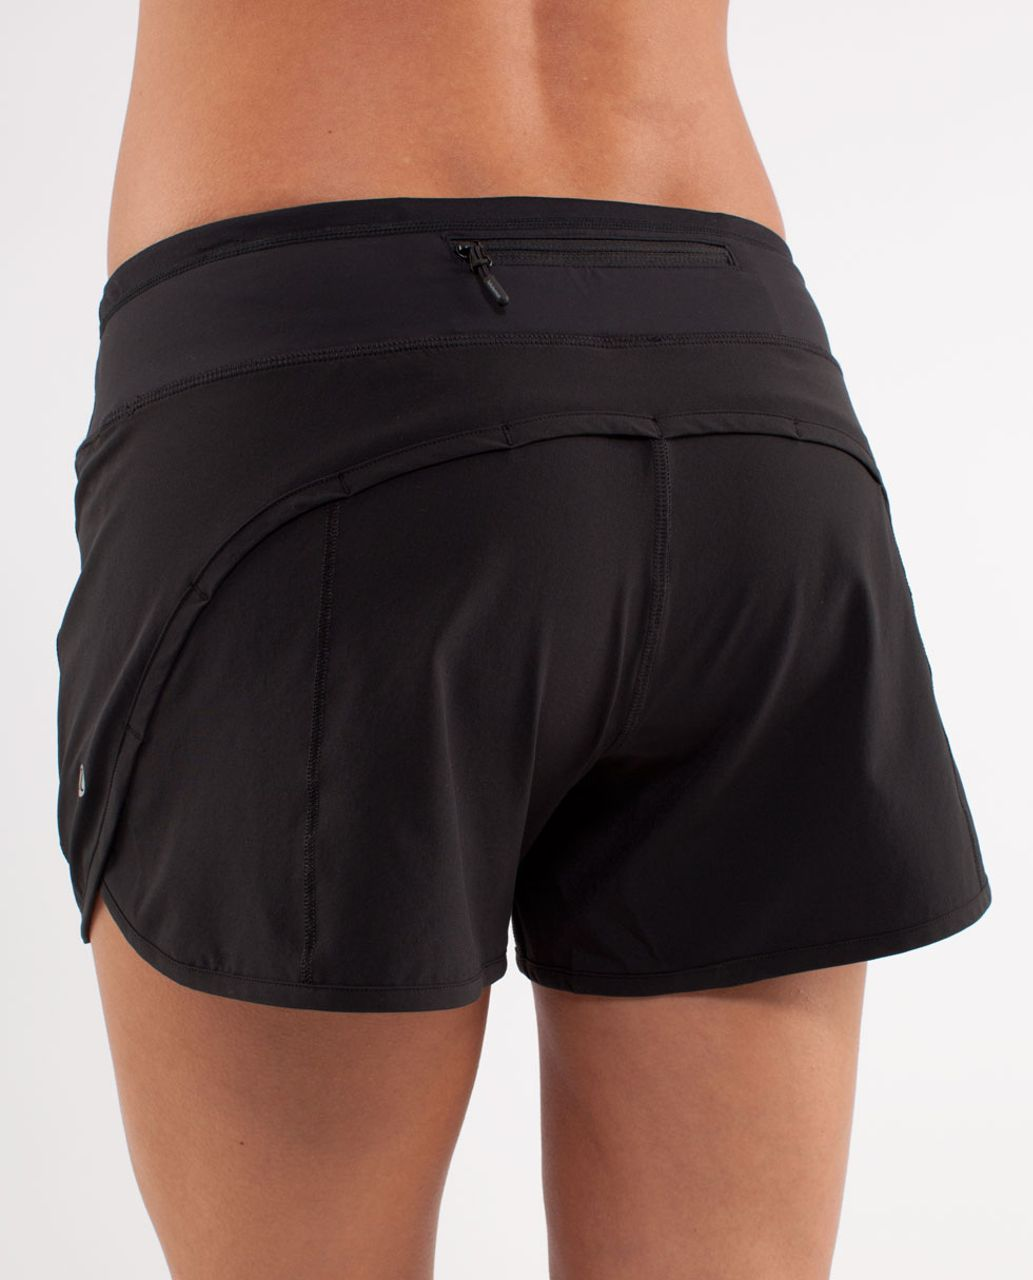 Lululemon Turbo Run Short - Black